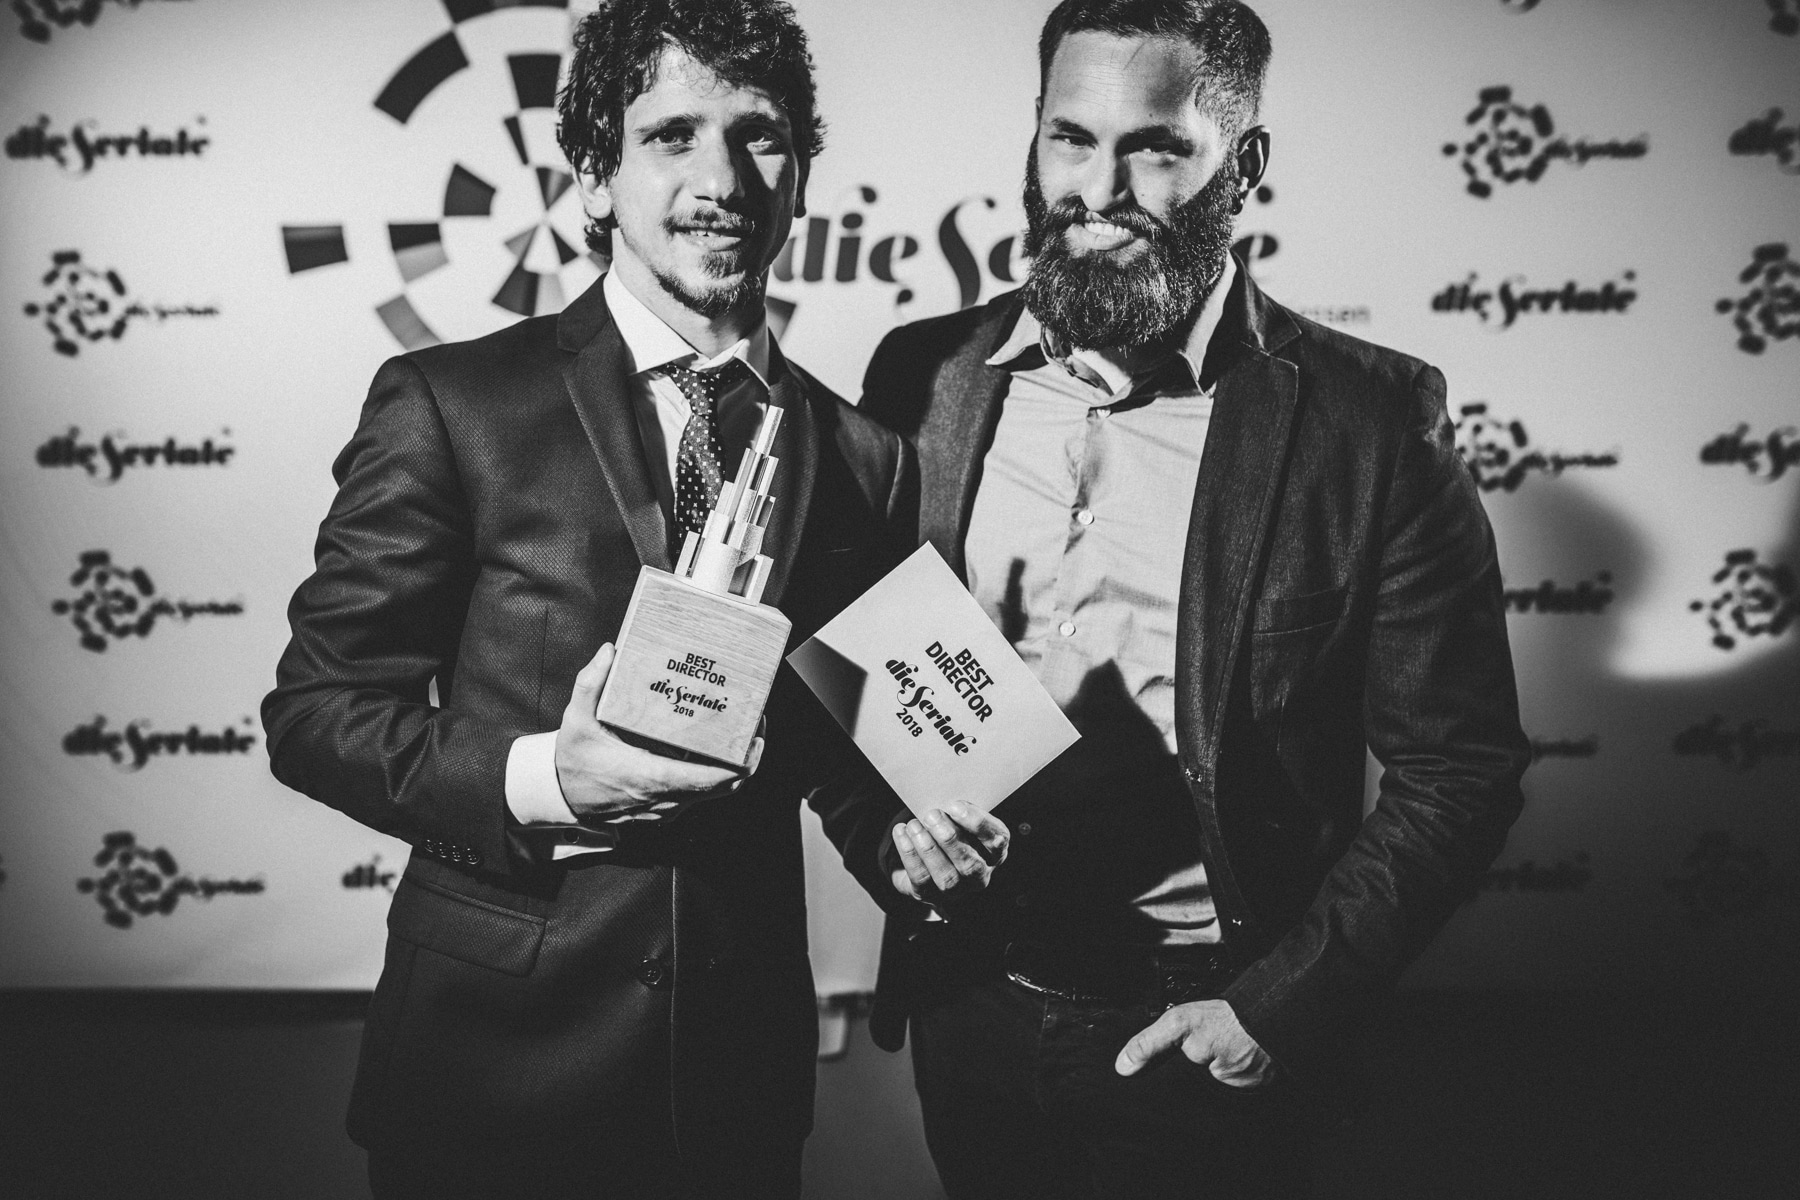 """BEST DIRECTOR - Riccardo Cannella, creator and director of """"Anachronisme"""" & Cristiano Bolla, first assistant director - from Italy. 